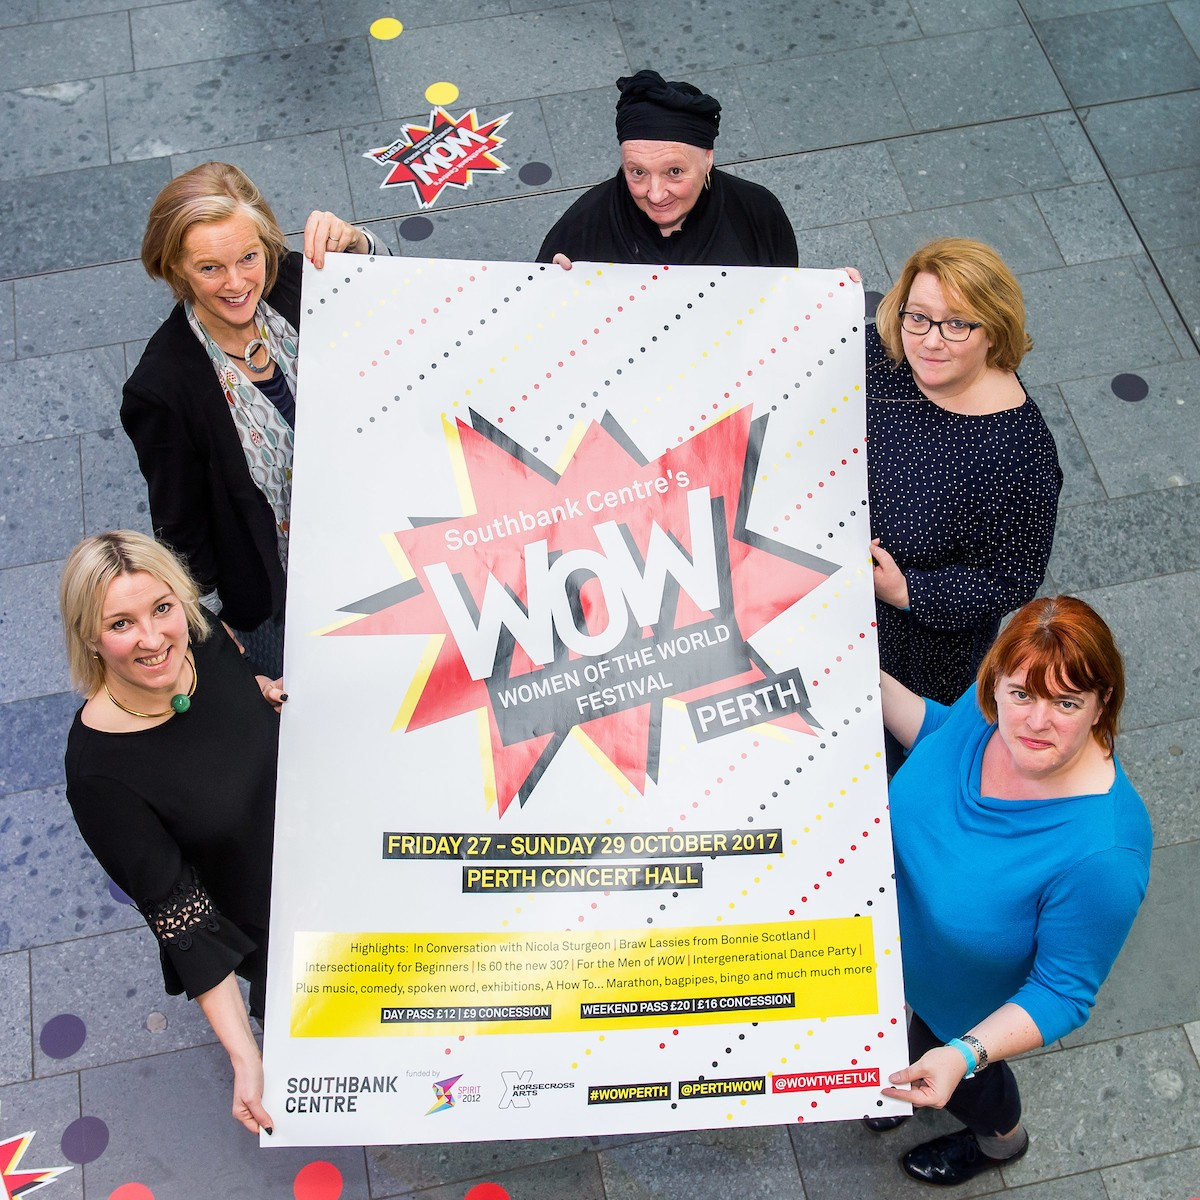 Following a fantastic launch in October 2017, WOW- Women of the World Festival, will return to Scotland for the second time in September 2018.